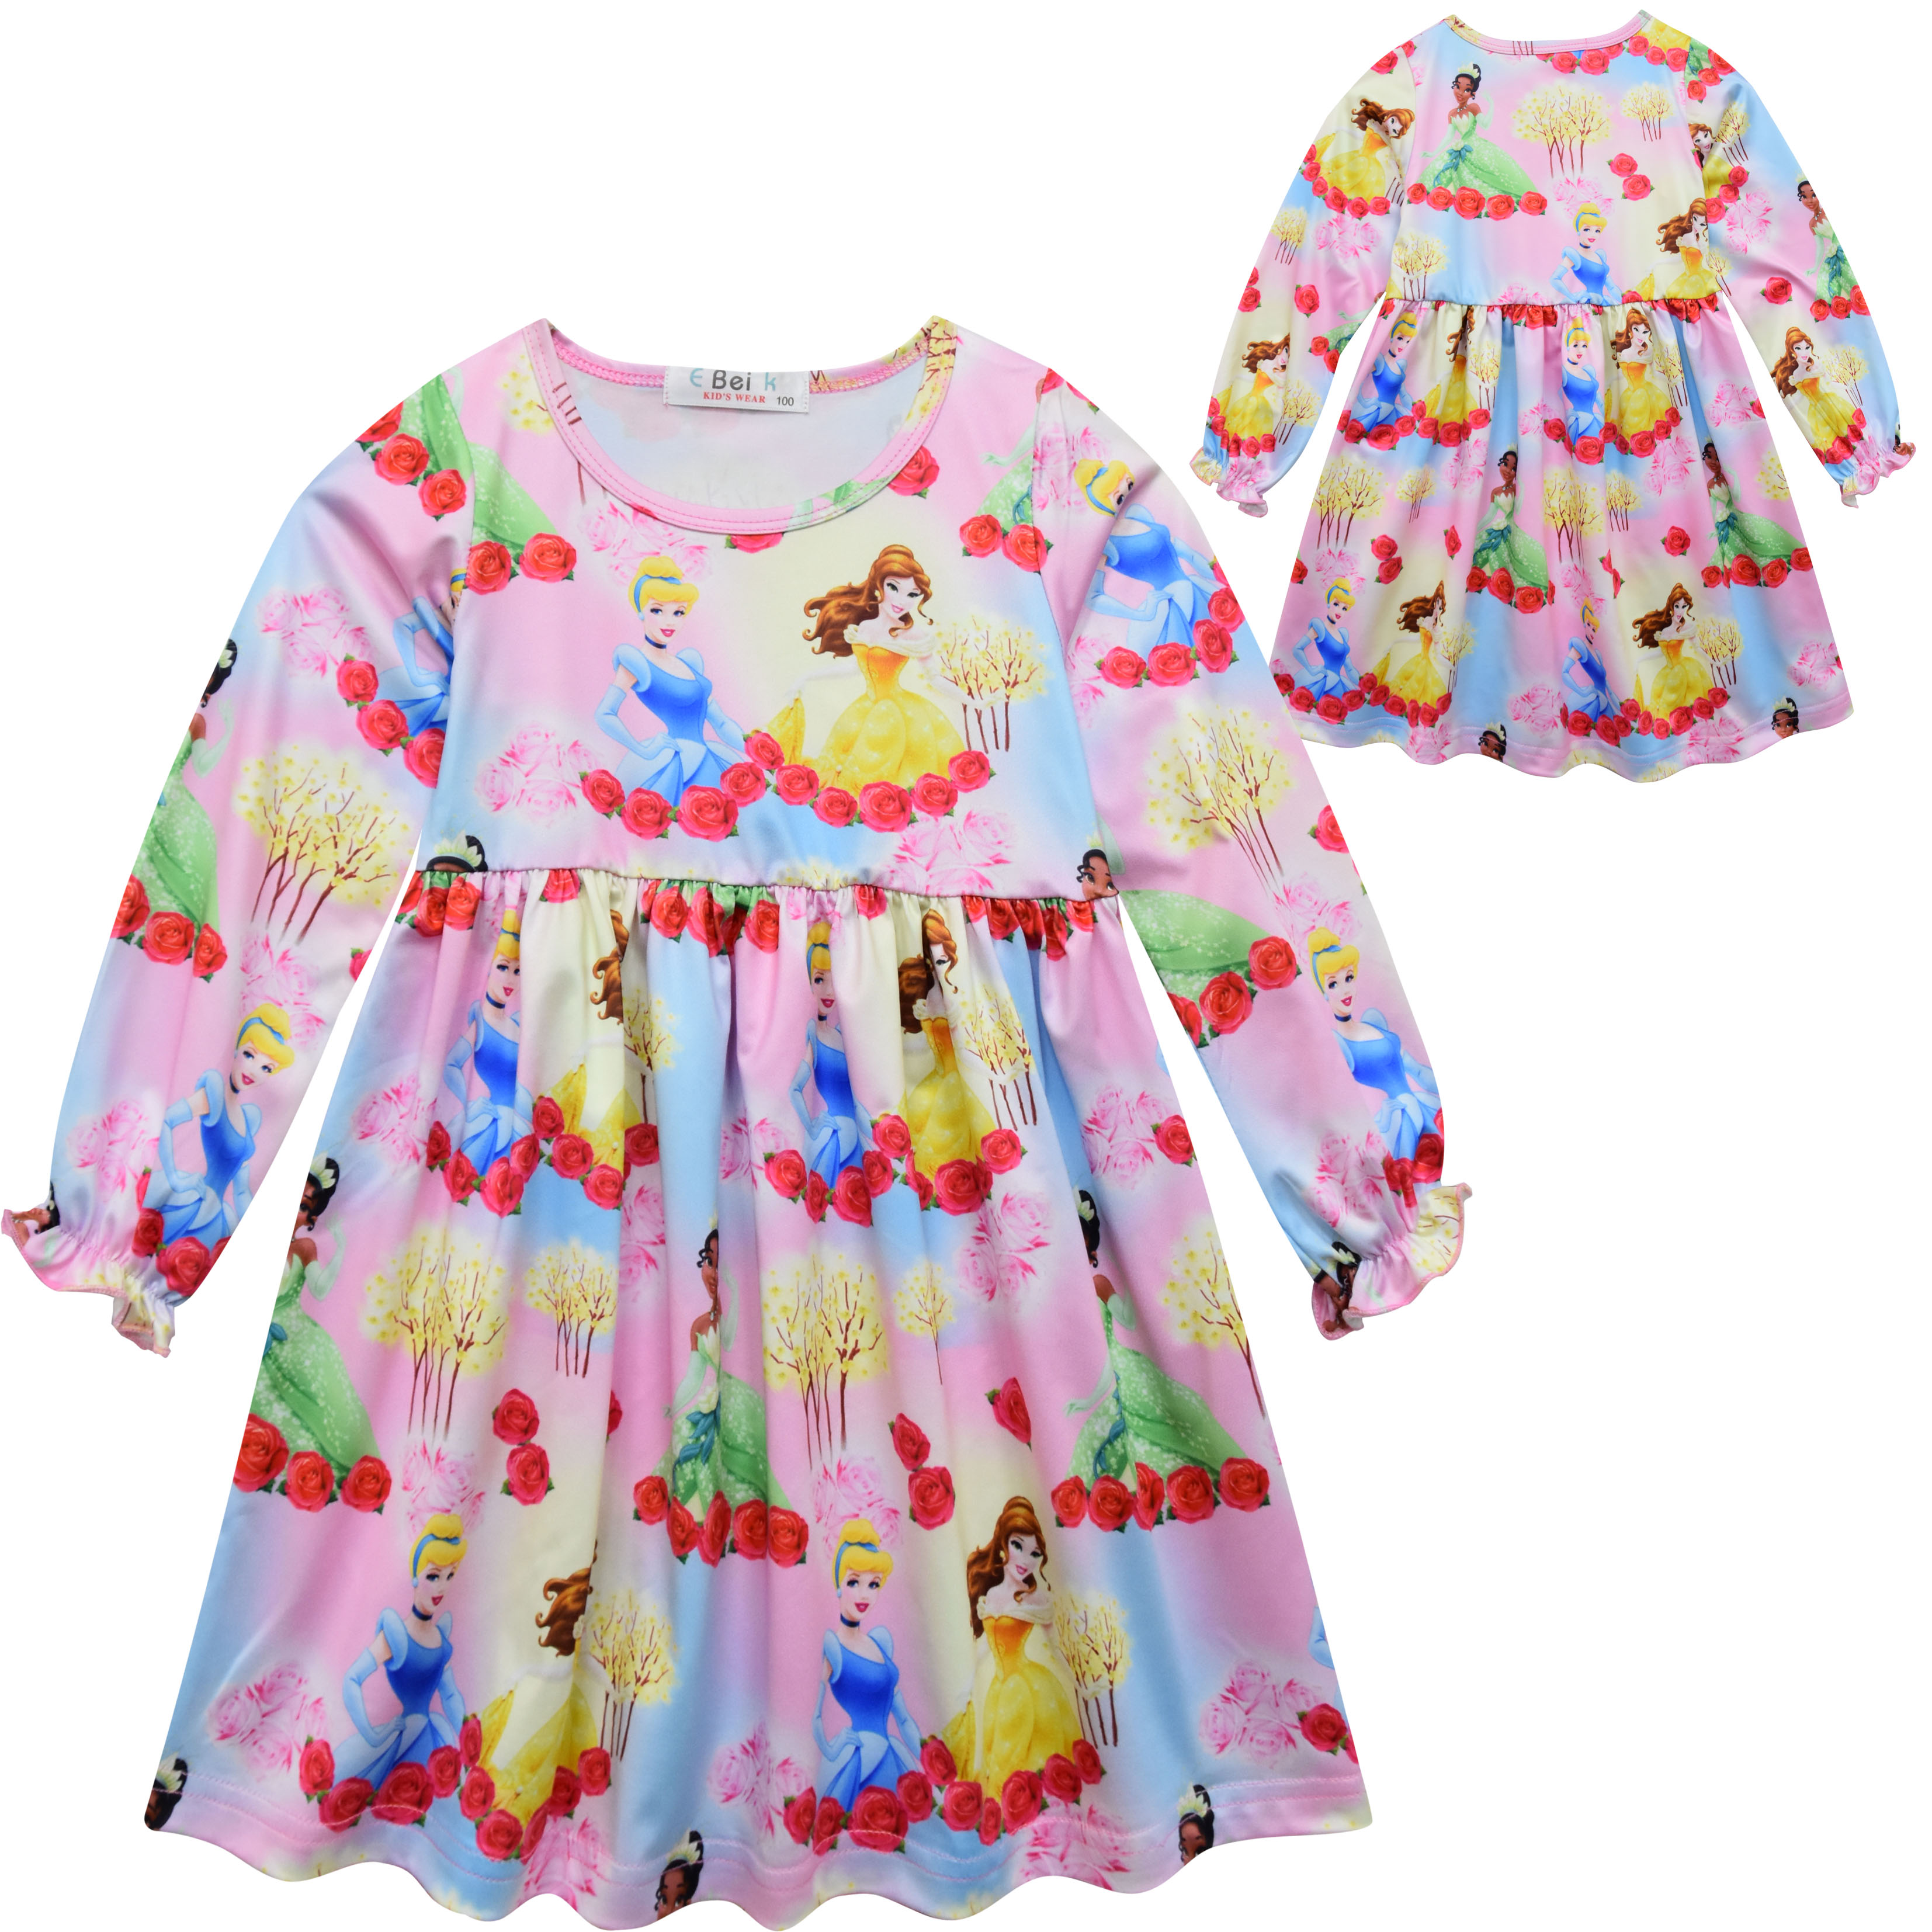 Toddler Girls Princess Cartoon Shirt Tunic Dress Summer Long Tops Casual Pajamas